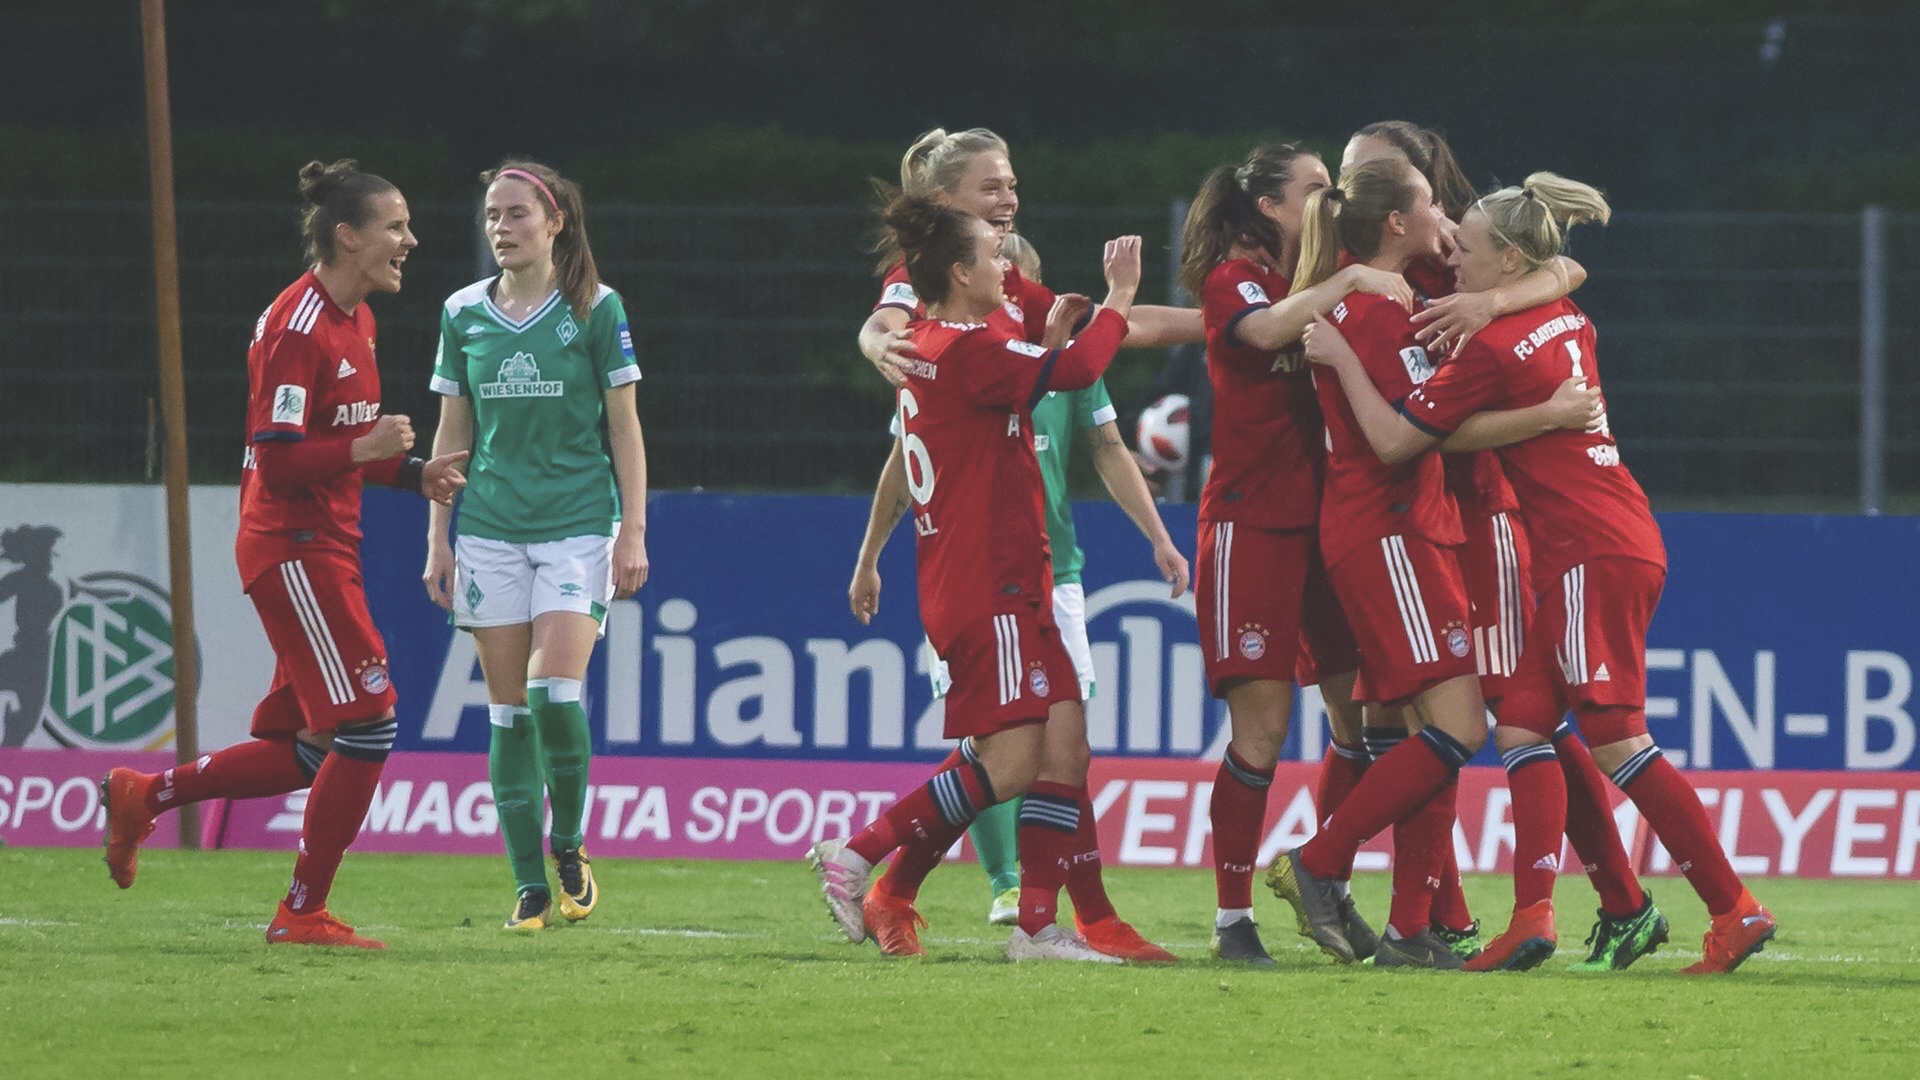 Photo from @FCBfrauen